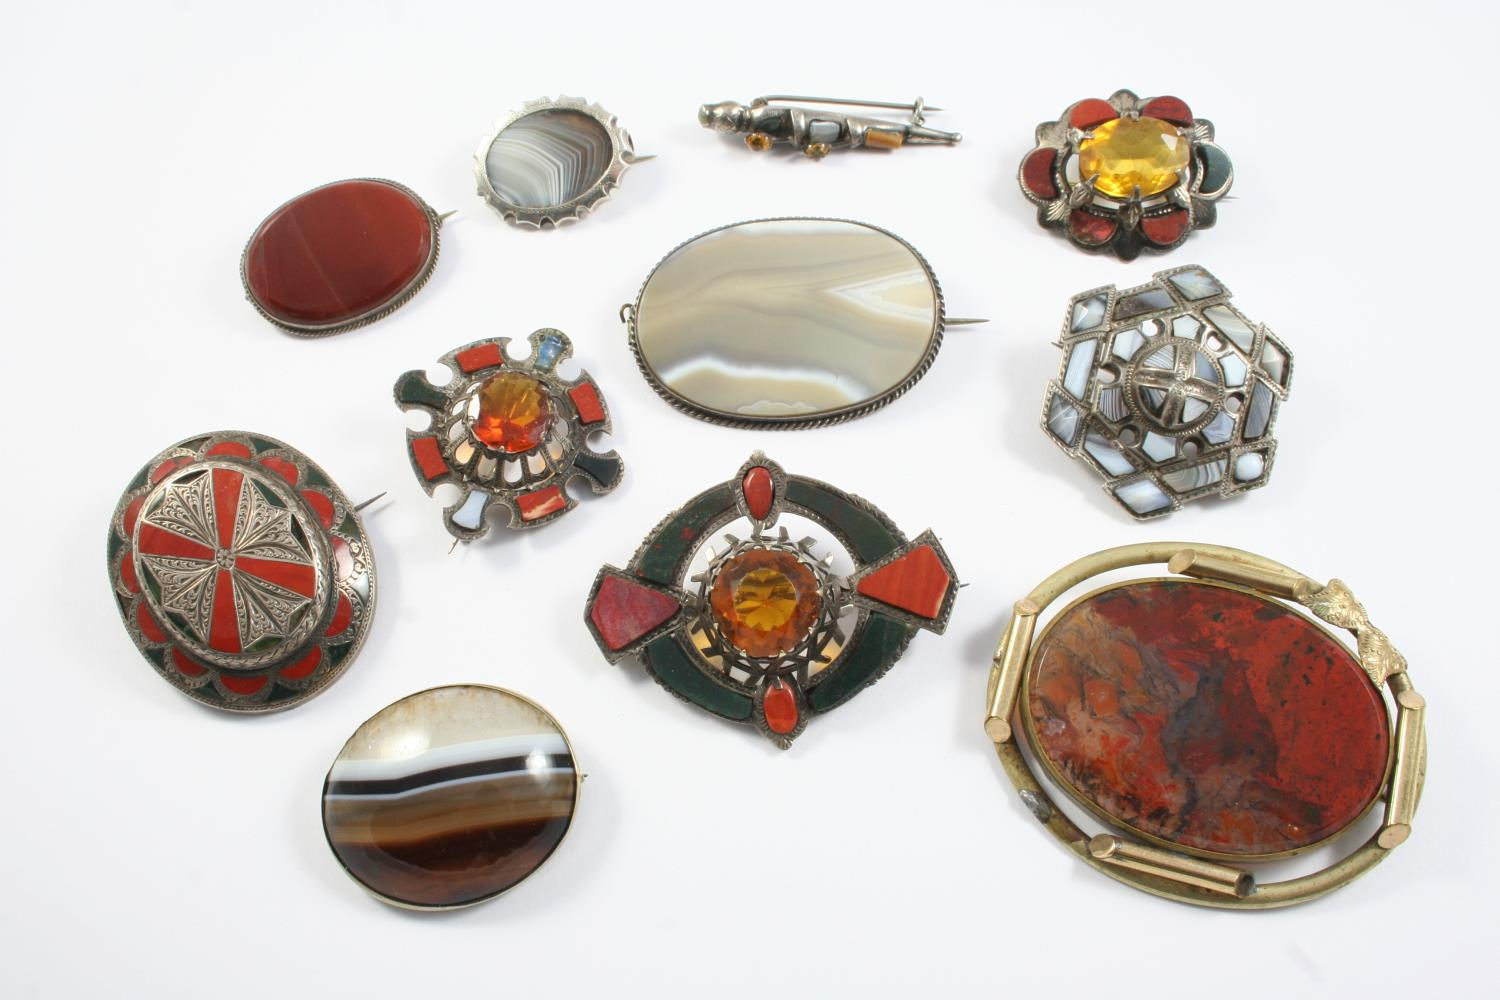 A QUANTITY OF ASSORTED SCOTTISH AGATE AND SILVER BROOCHES